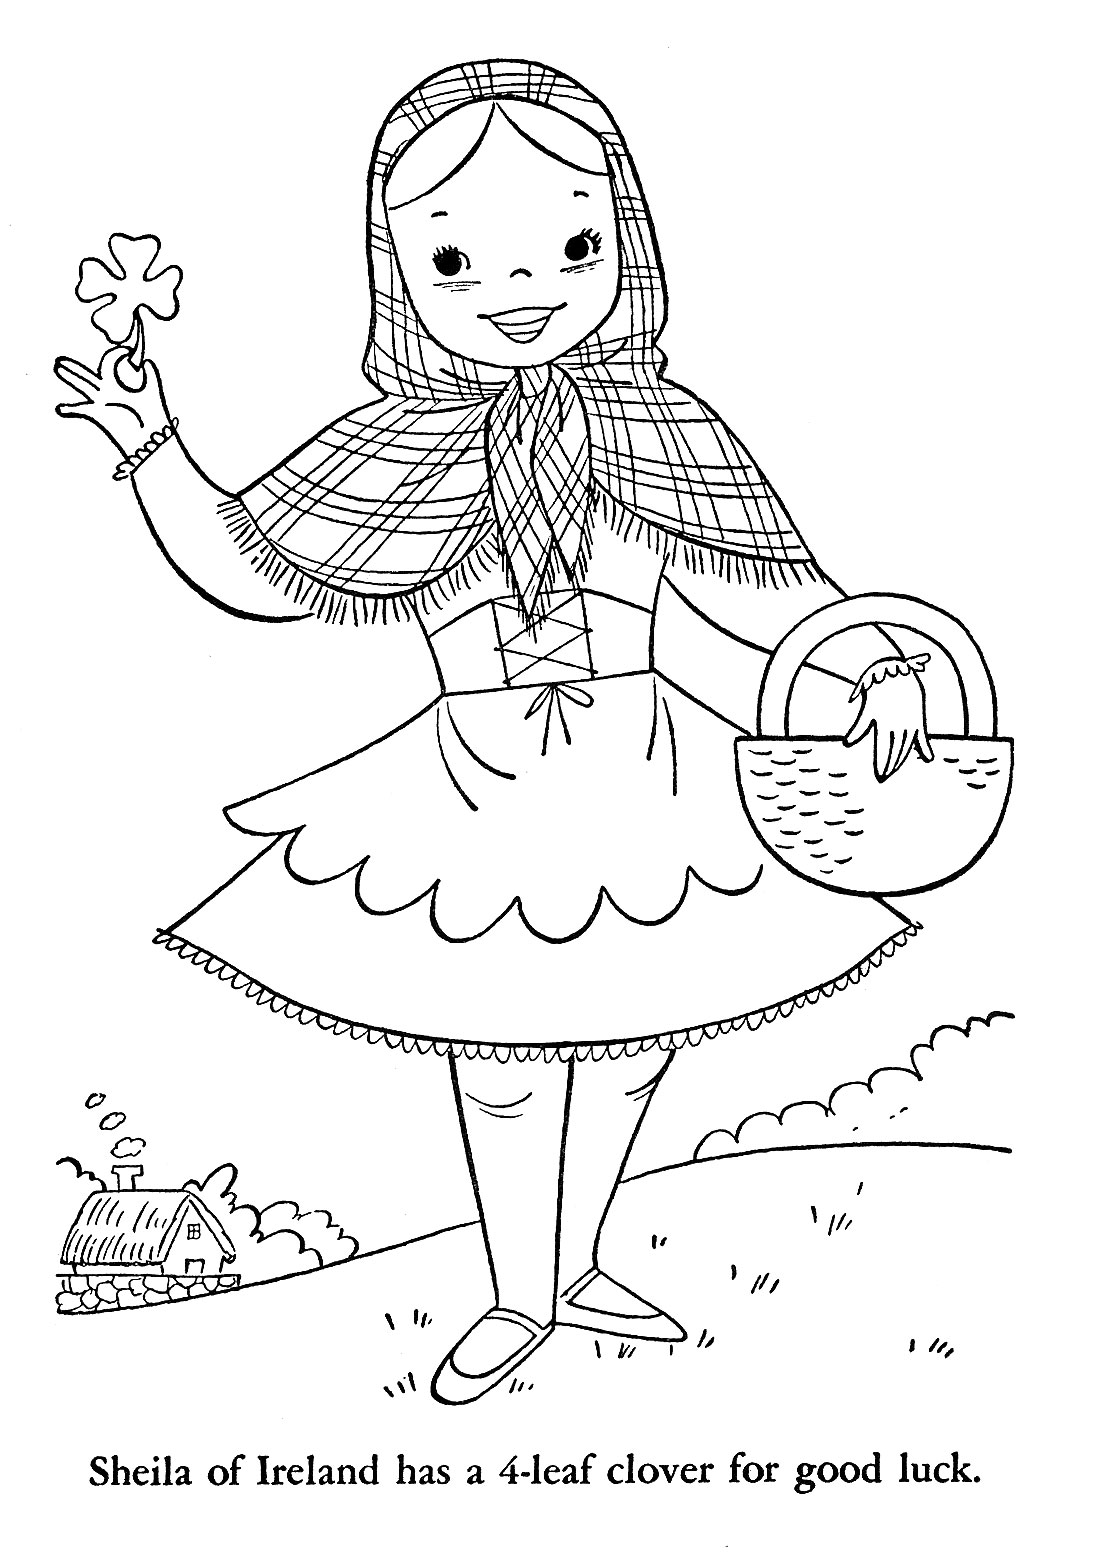 coloring pages with children - photo#11